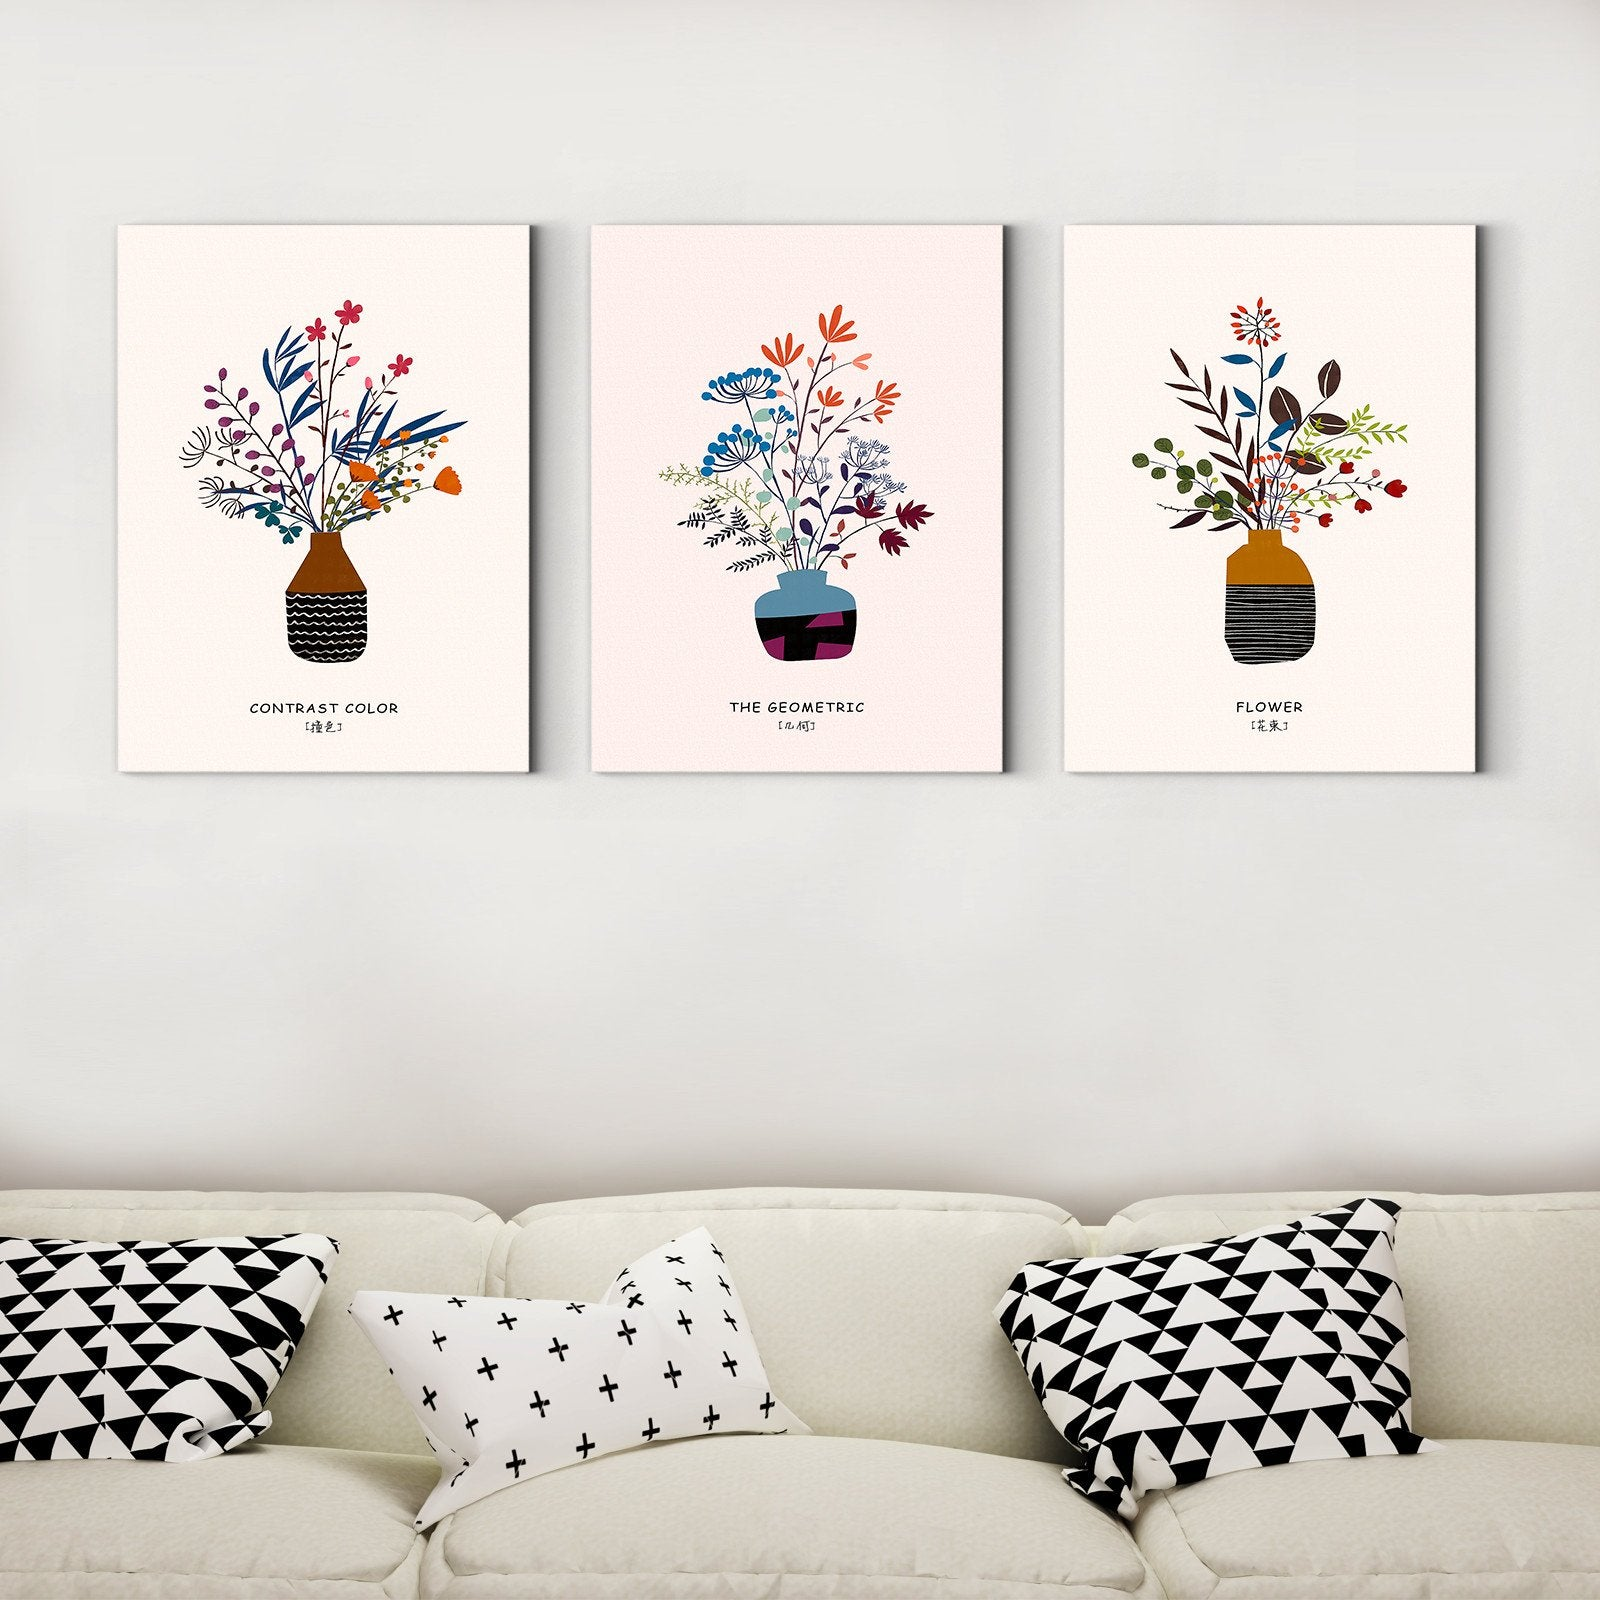 Vintage style flower arrangement - plant decoration painting - living room-Multi Panel Wall Art057